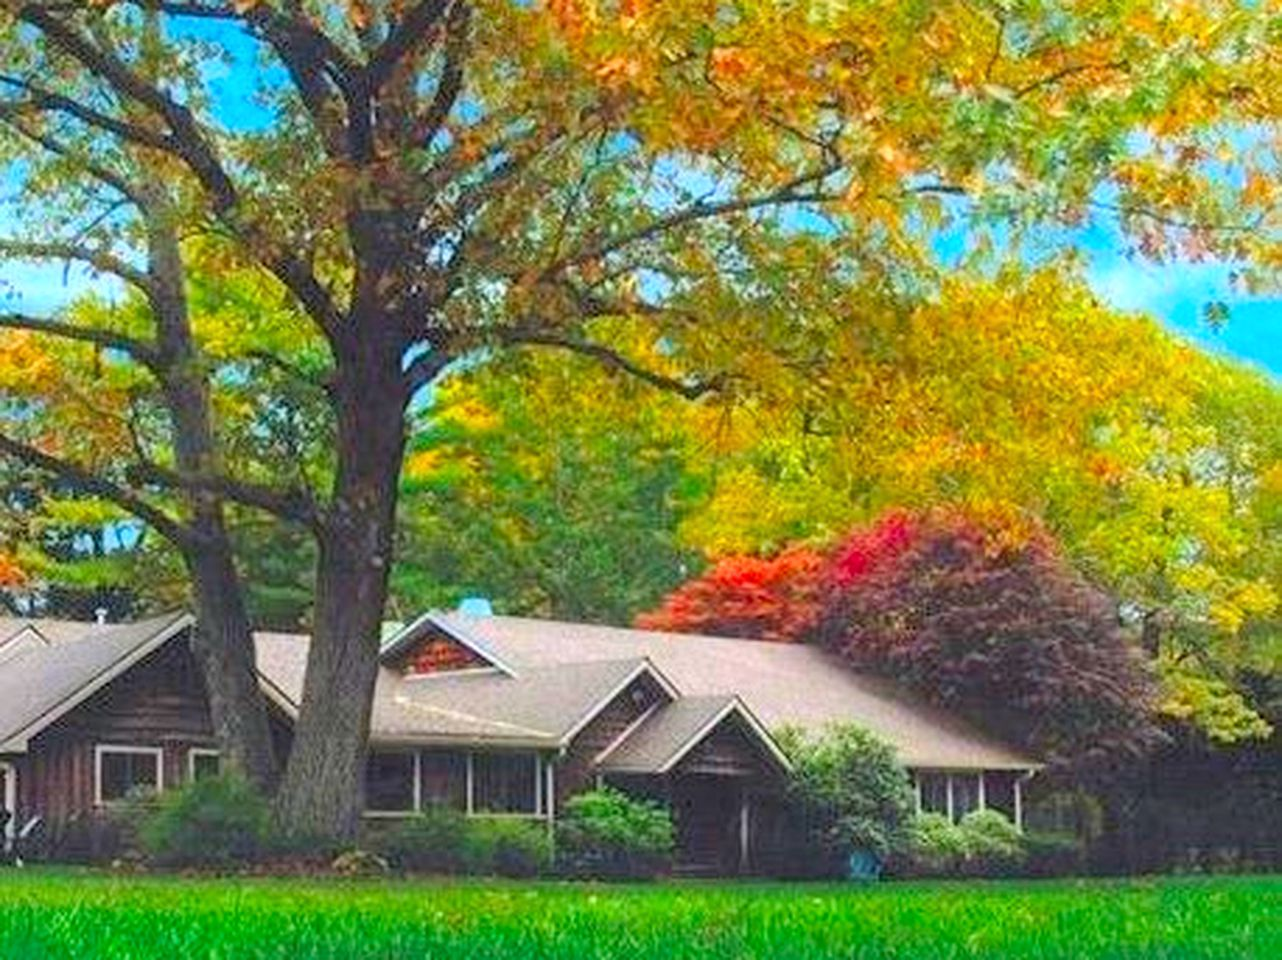 Cabin rental surrounded by trees with colorful leaves in autumn in Voluntown, CT.